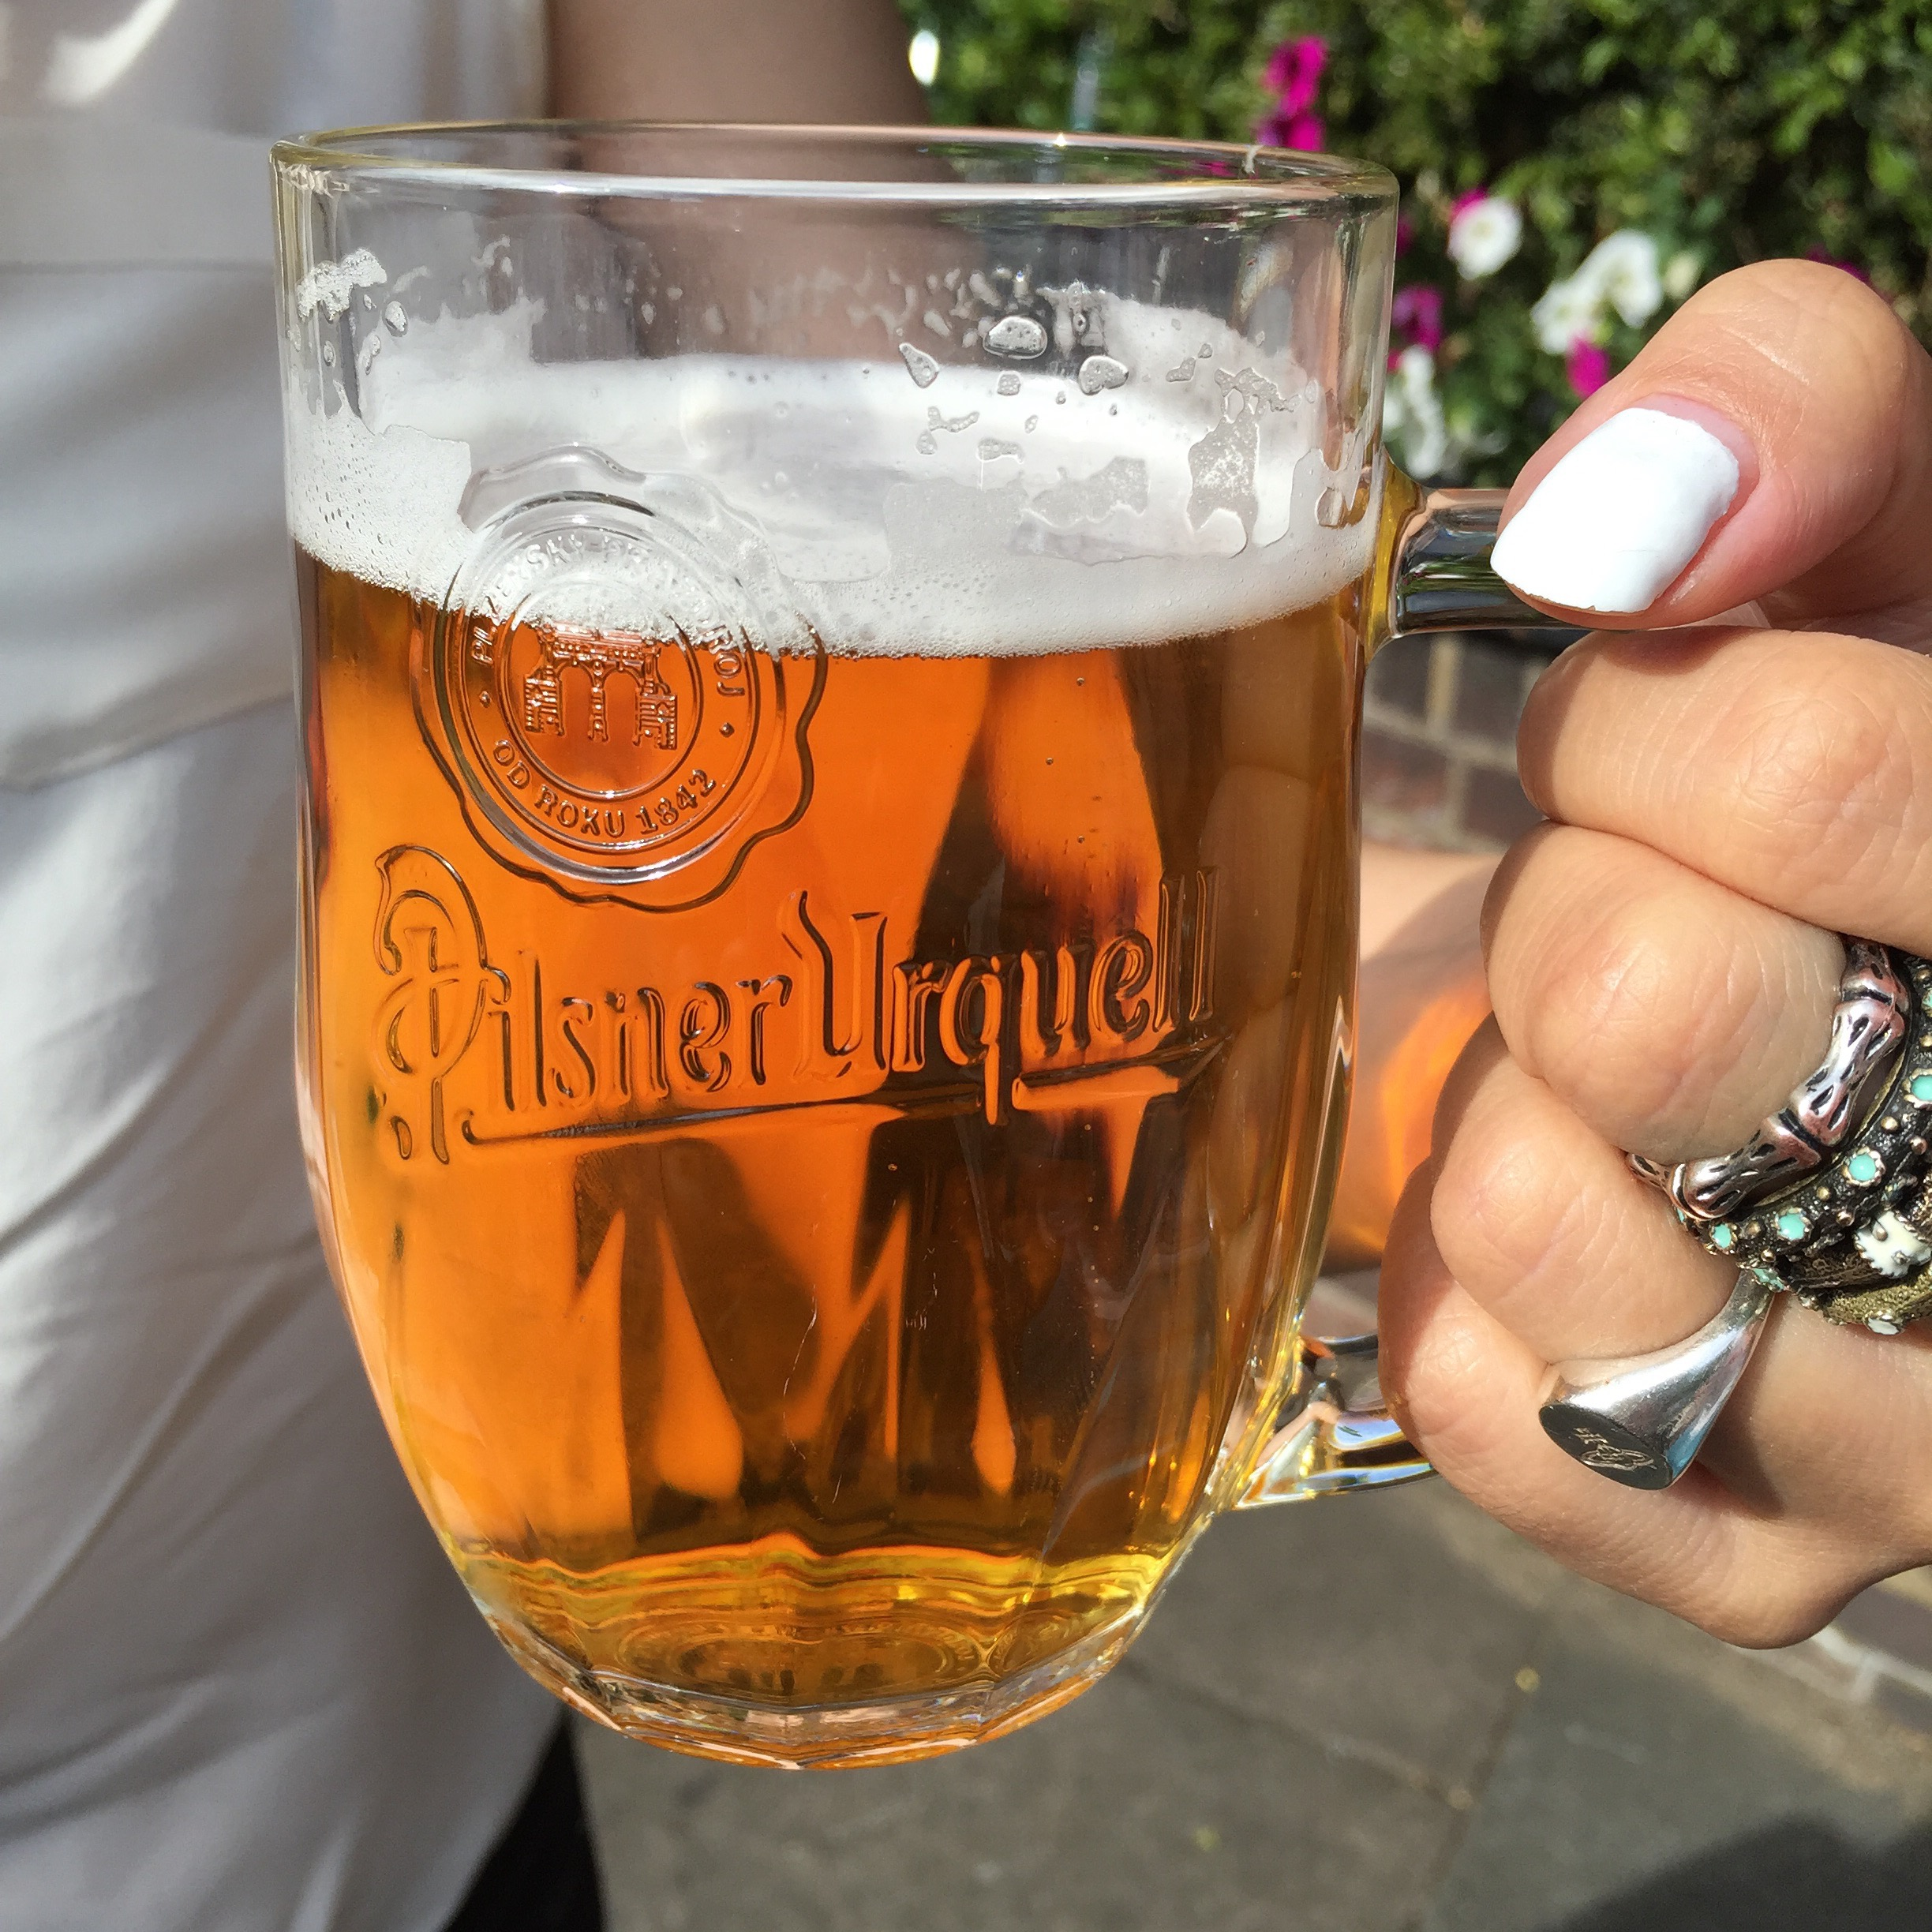 Summer drinking, unfiltered Pilsner Urquell